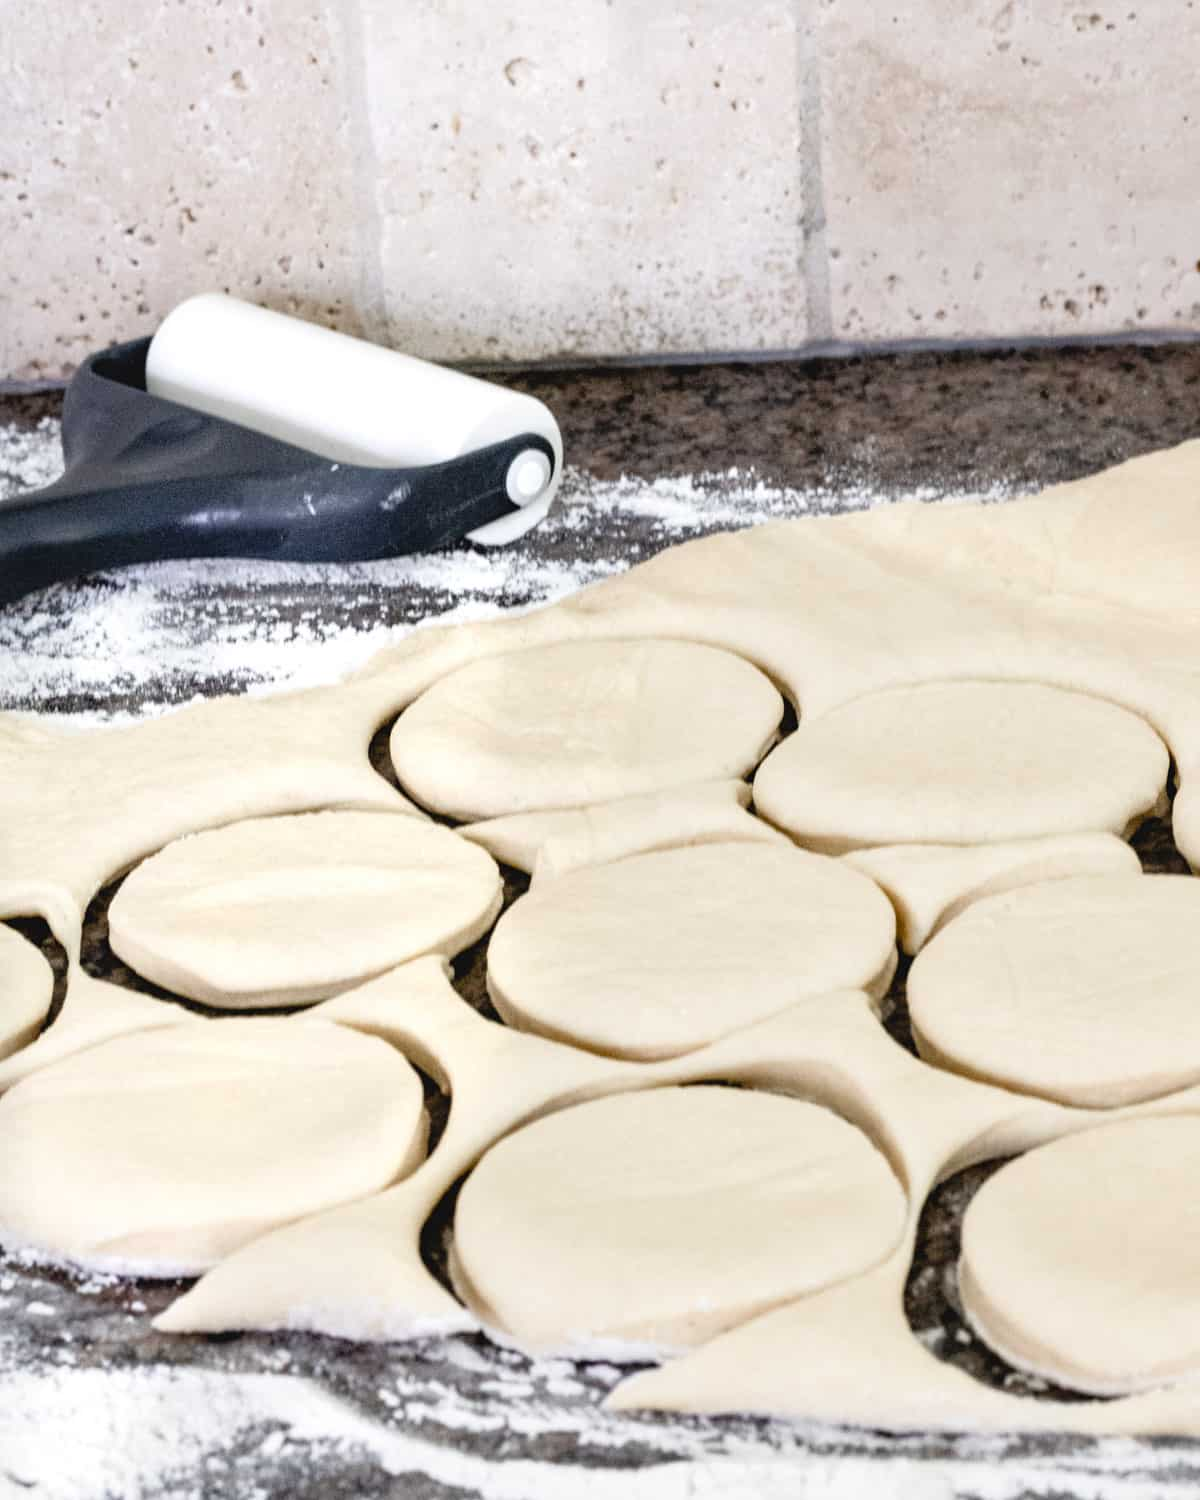 Dough that is rolled ¼ inch thick and cut into 3-inch circles.